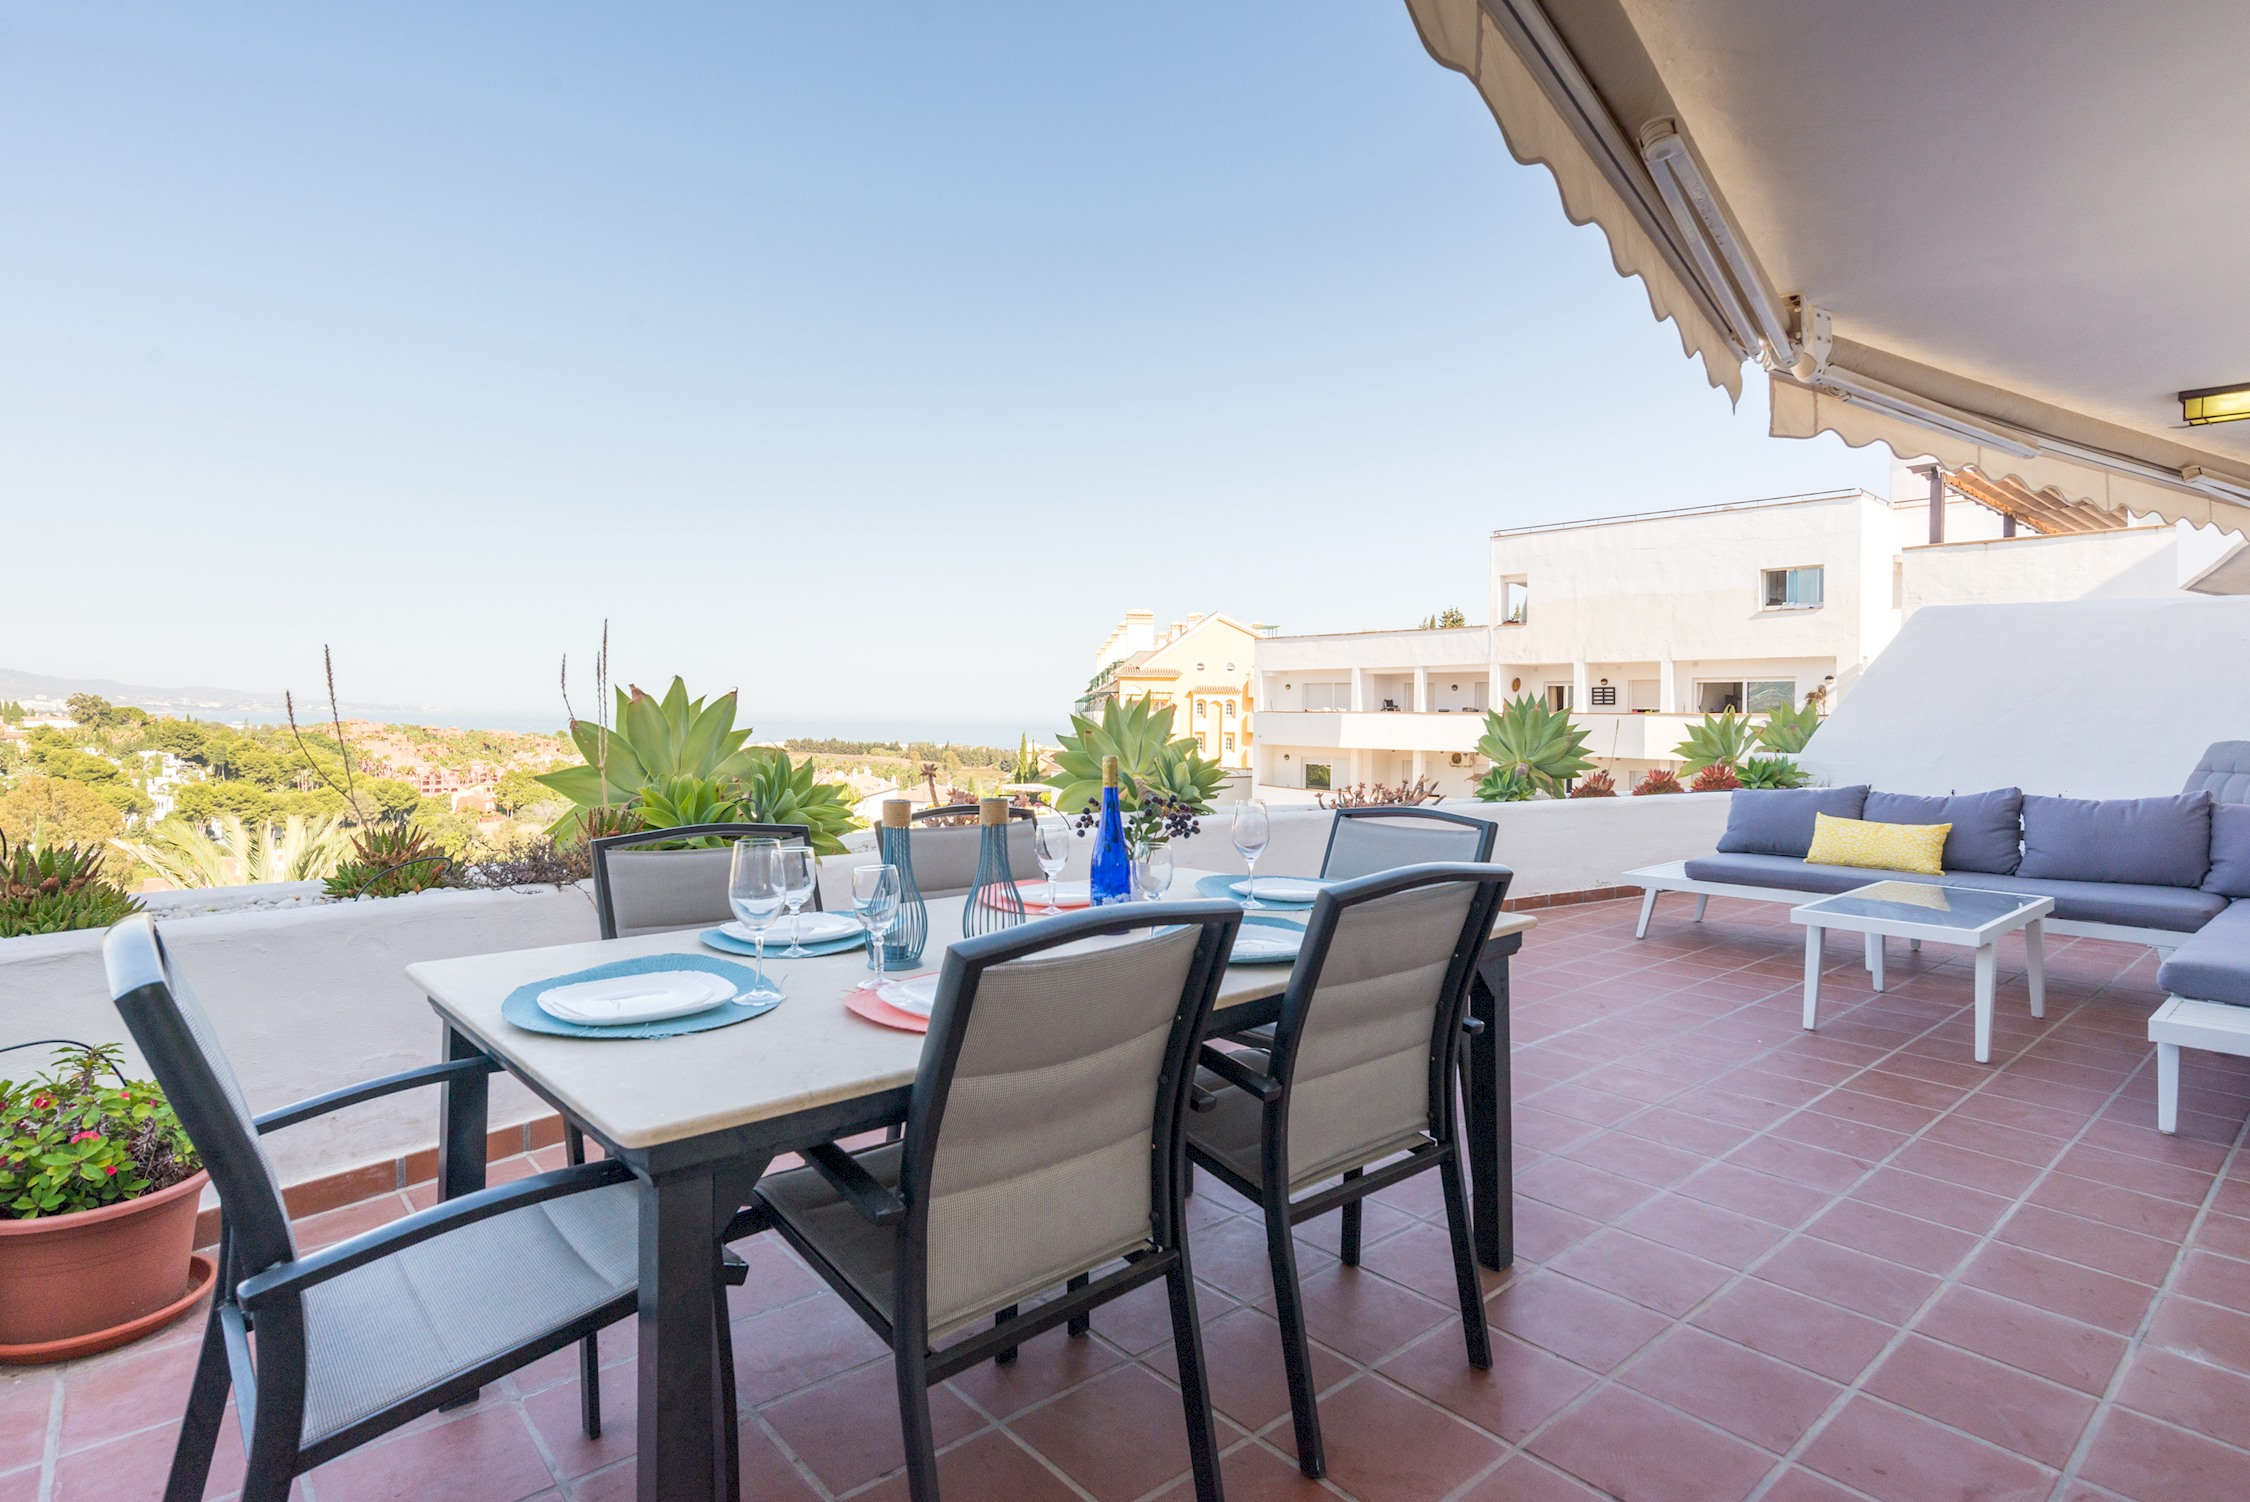 Apartment MalagaSuite Marbella Solarium   Pool photo 21307061